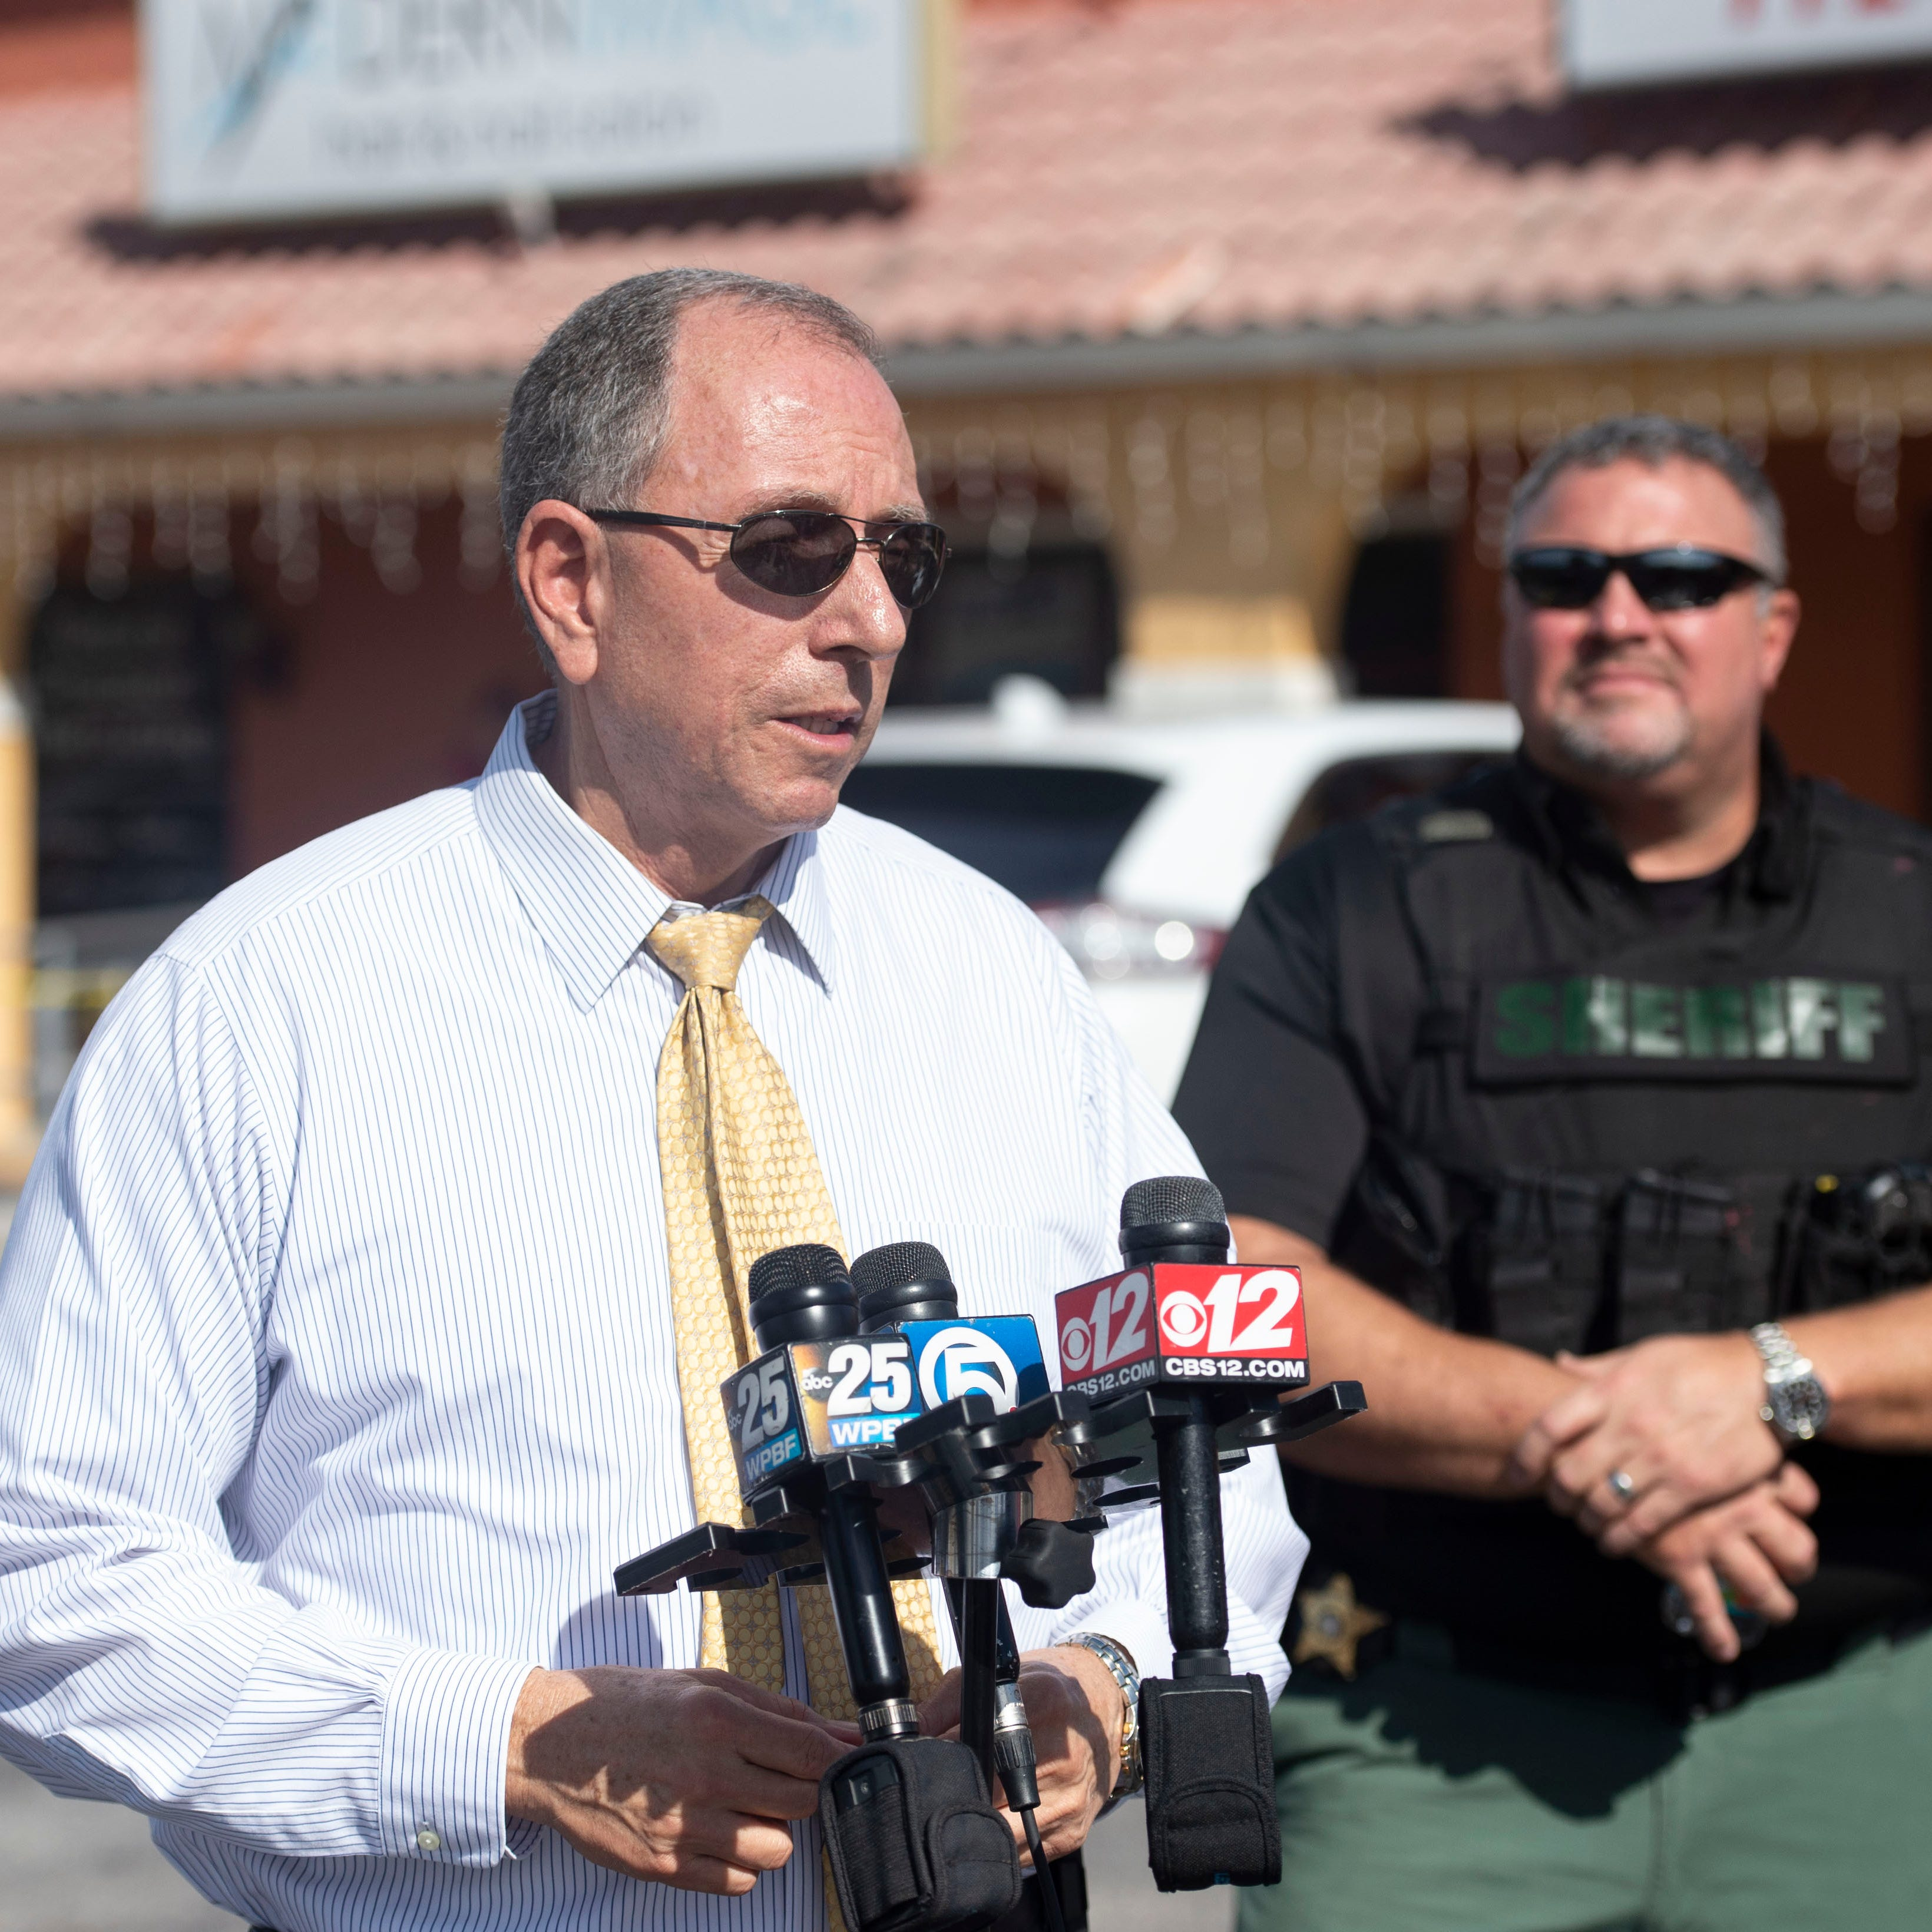 If authorities won't condemn Jensen Beach shooting, they condone it